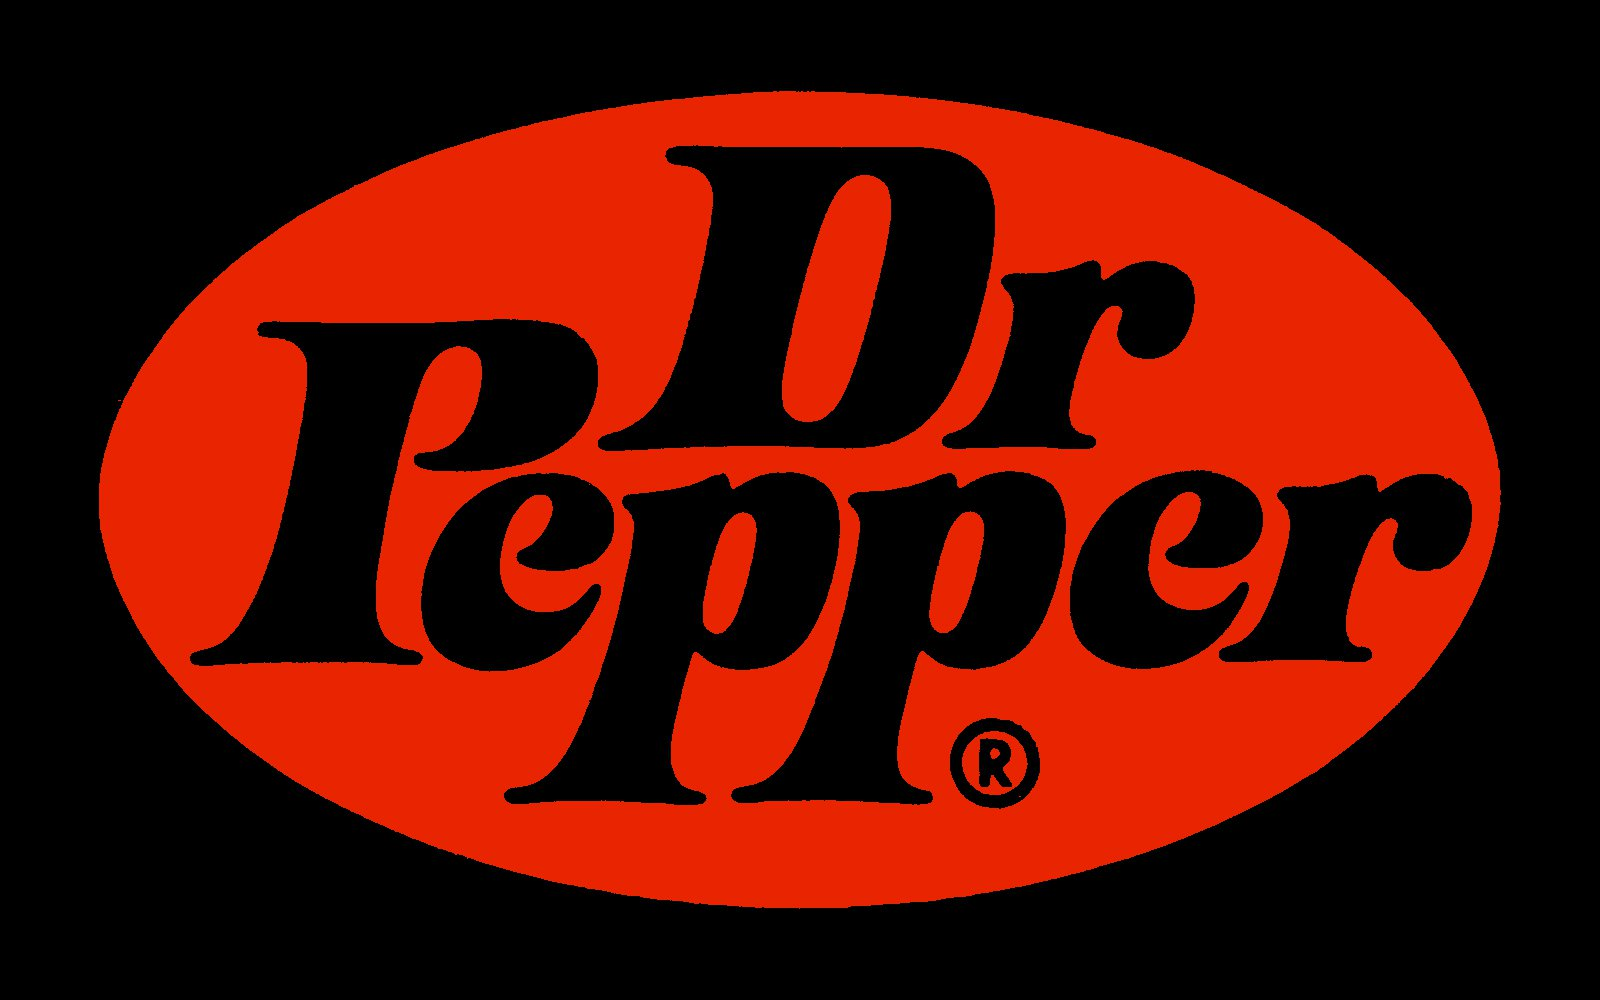 Dr Pepper Logo, Dr Pepper Symbol, Meaning, History and ... The Letter D In Bubble Letters